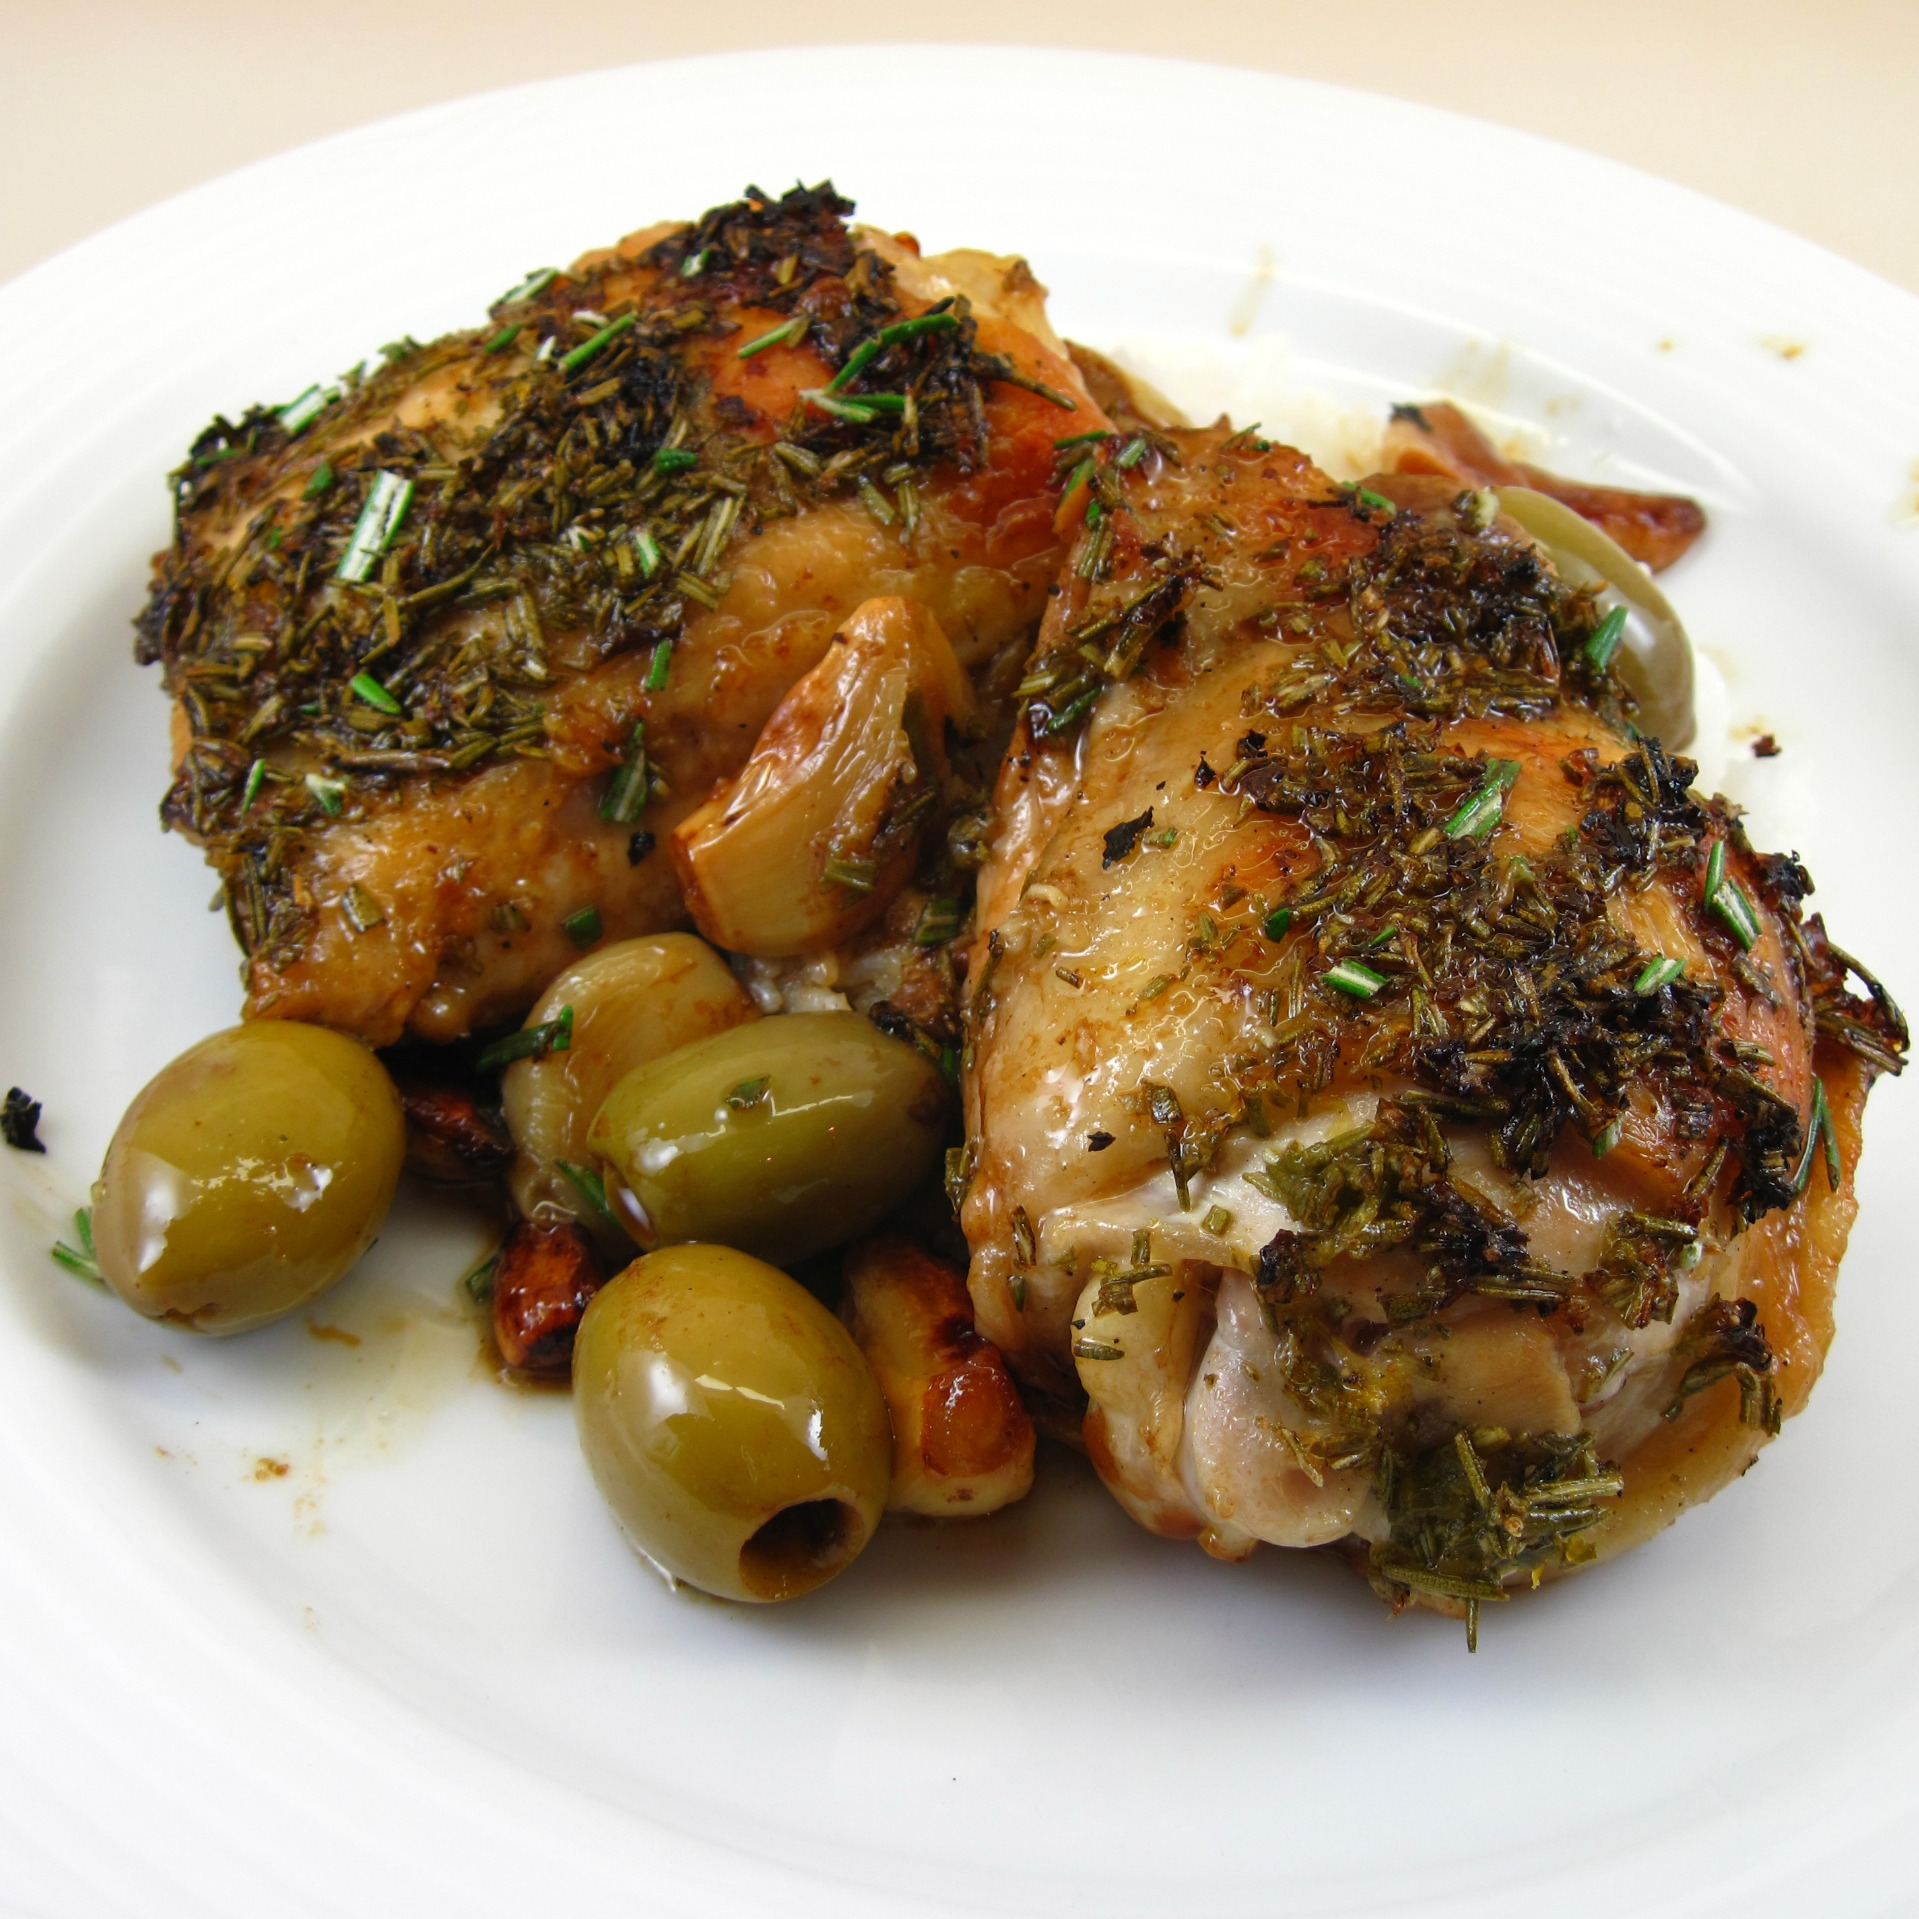 Roast Lemon-Garlic Chicken with Green Olives